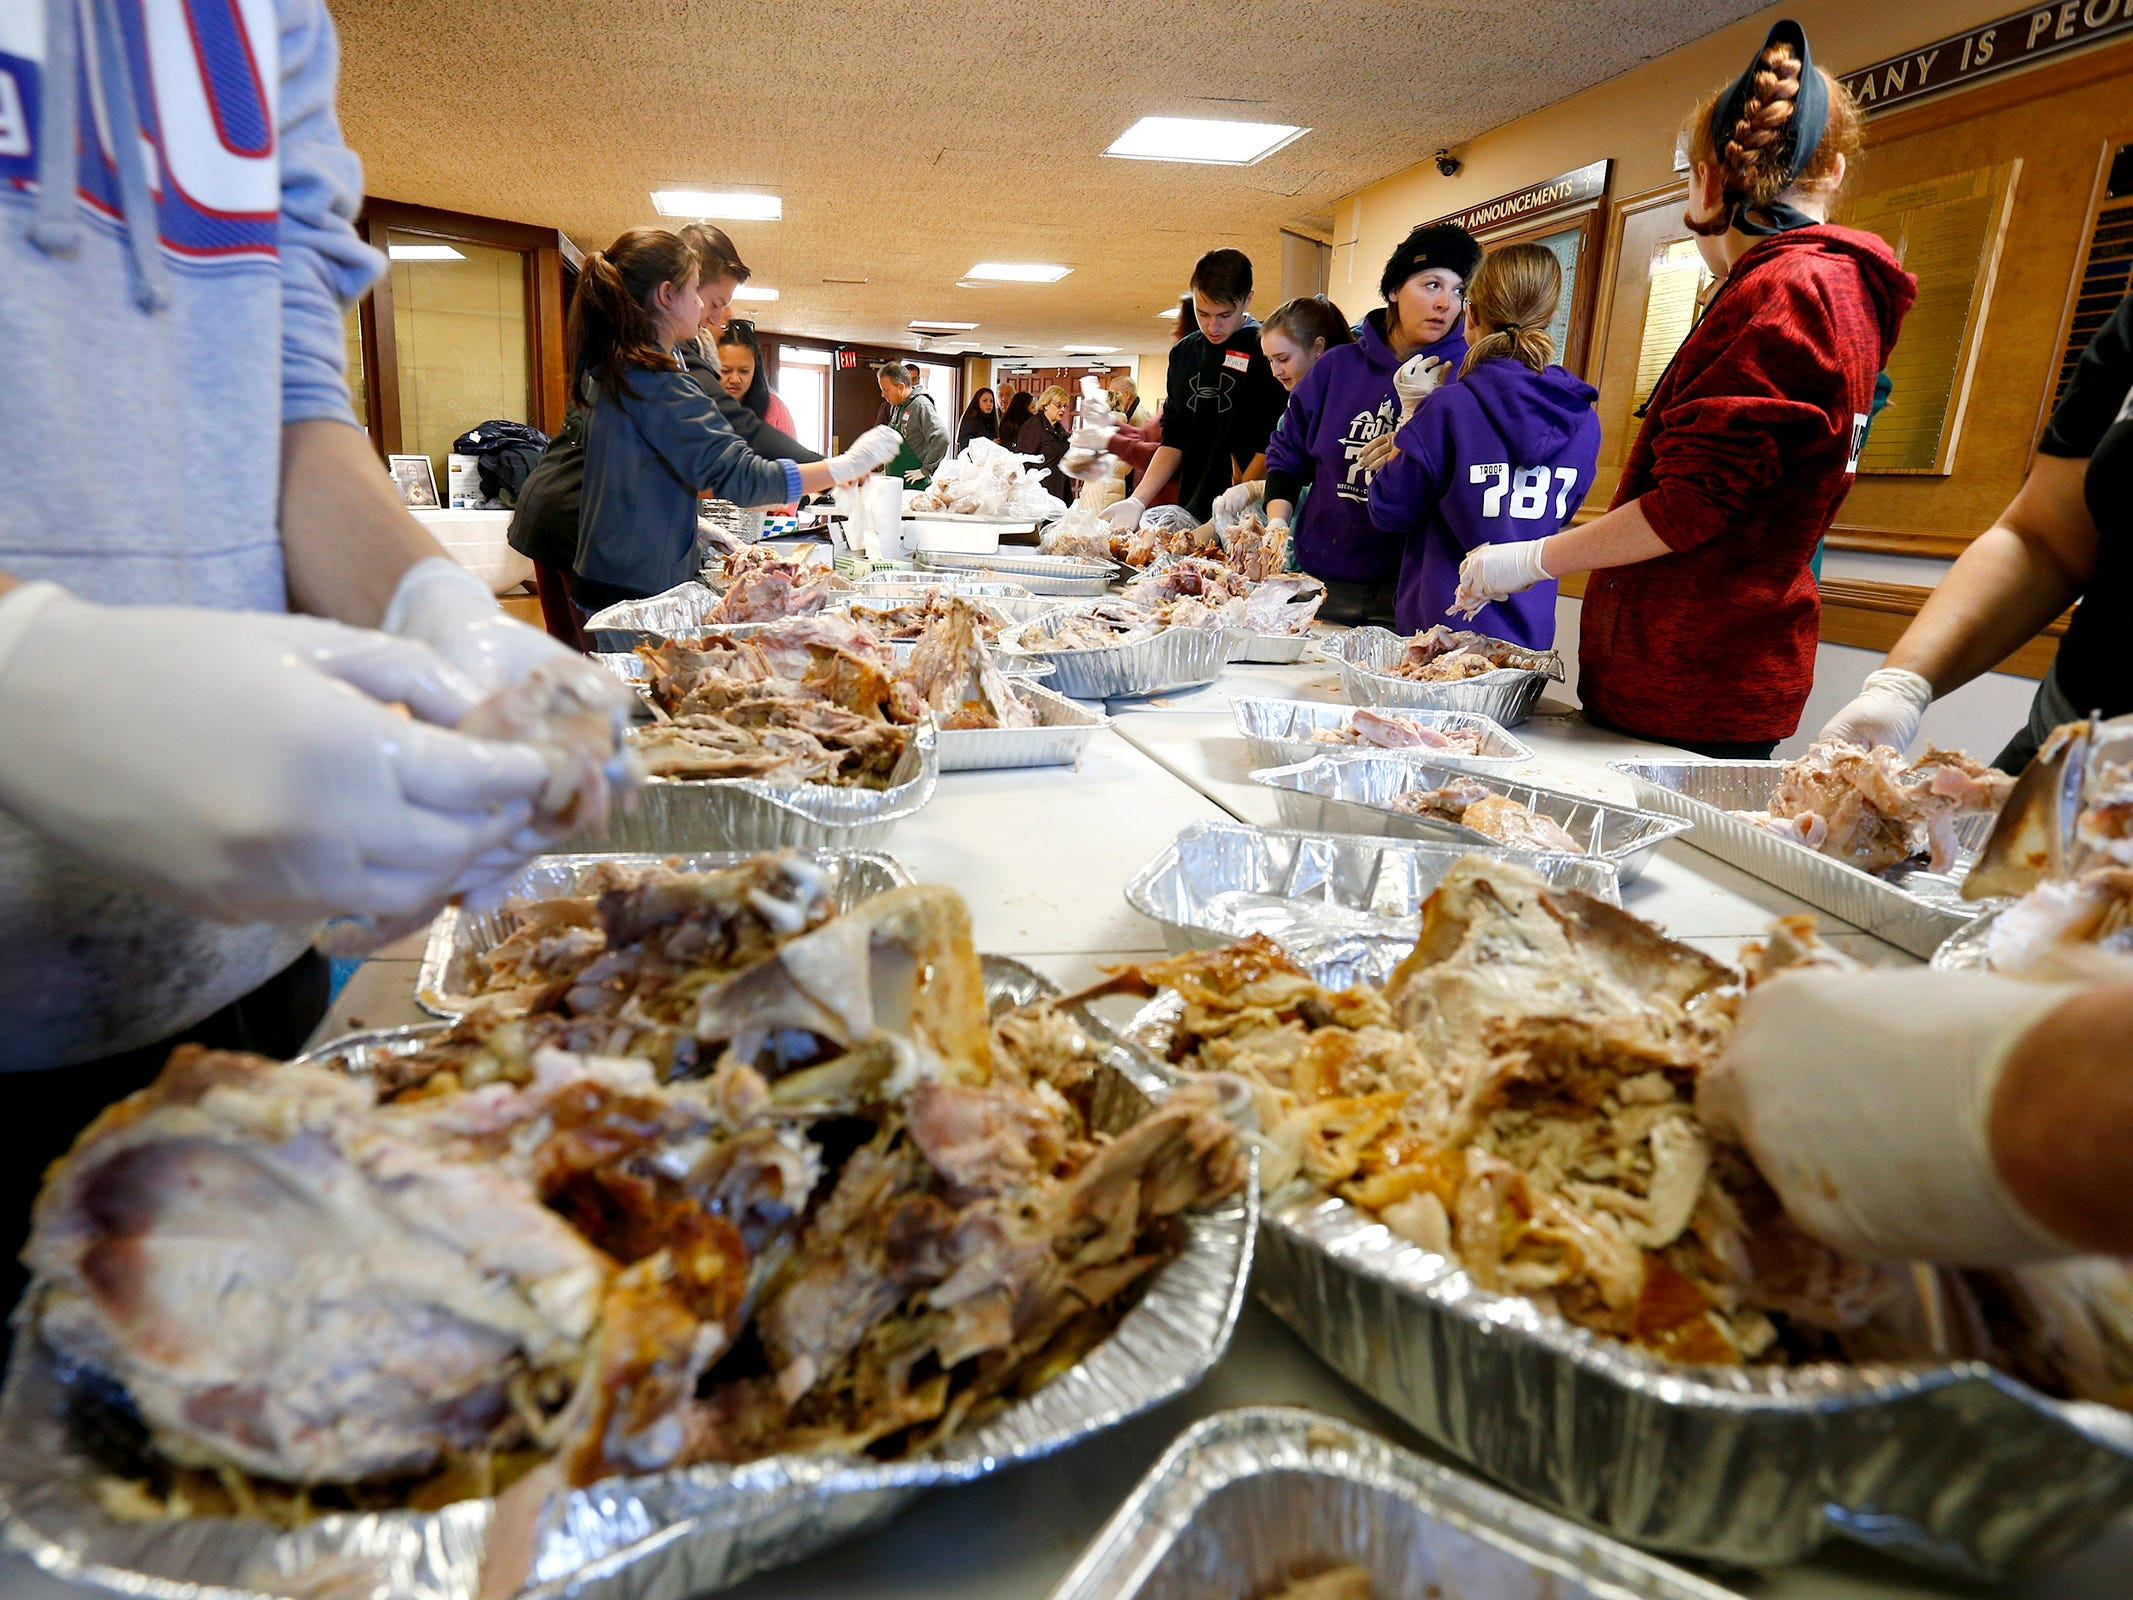 Volunteers clean additional meat off turkeys at The Church of the Epiphany in Brick as they prepare and deliver meals to over 1,200 people in Monmouth and Ocean counties on Thanksgiving Day, November 22, 2018.